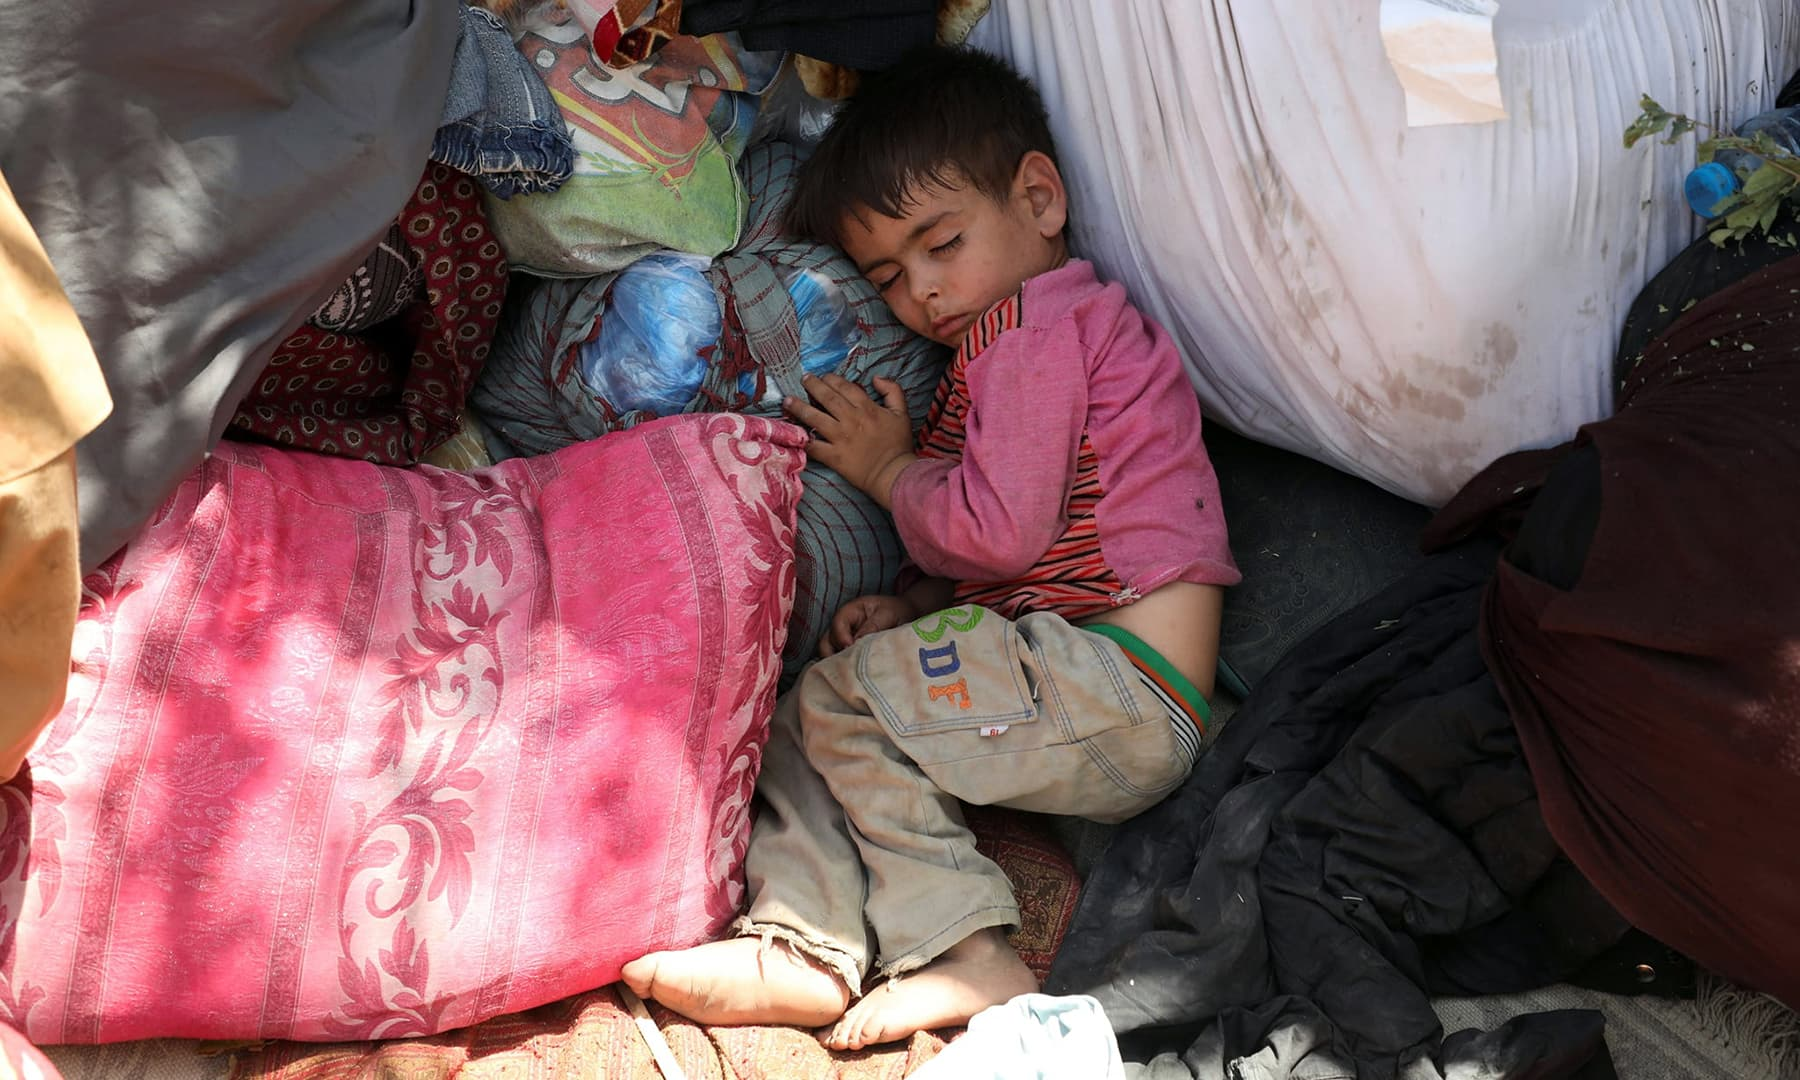 An internally displaced child from northern provinces, who fled from his home due to the fighting between Taliban and Afghan security forces, sleeps in a public park that they use as shelter in Kabul, Afghanistan, August 10. — Reuters